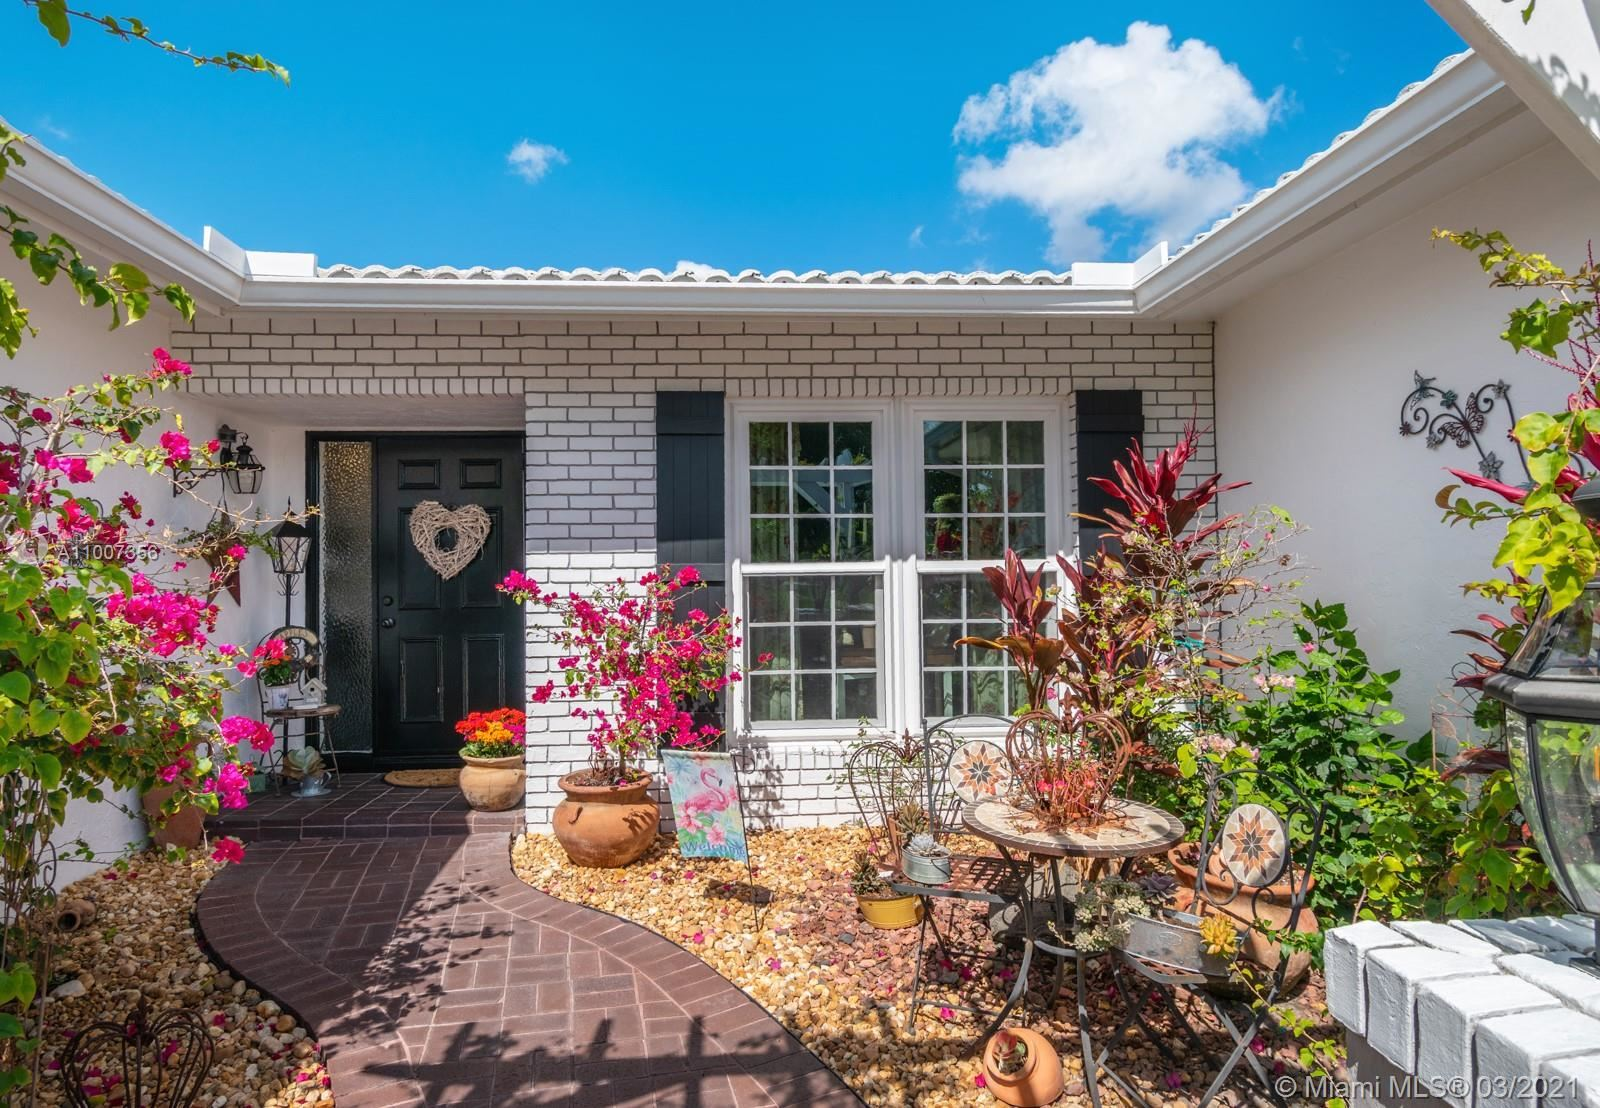 1392 NW 86th Way, Coral Springs, FL 33071 - #: A11007356